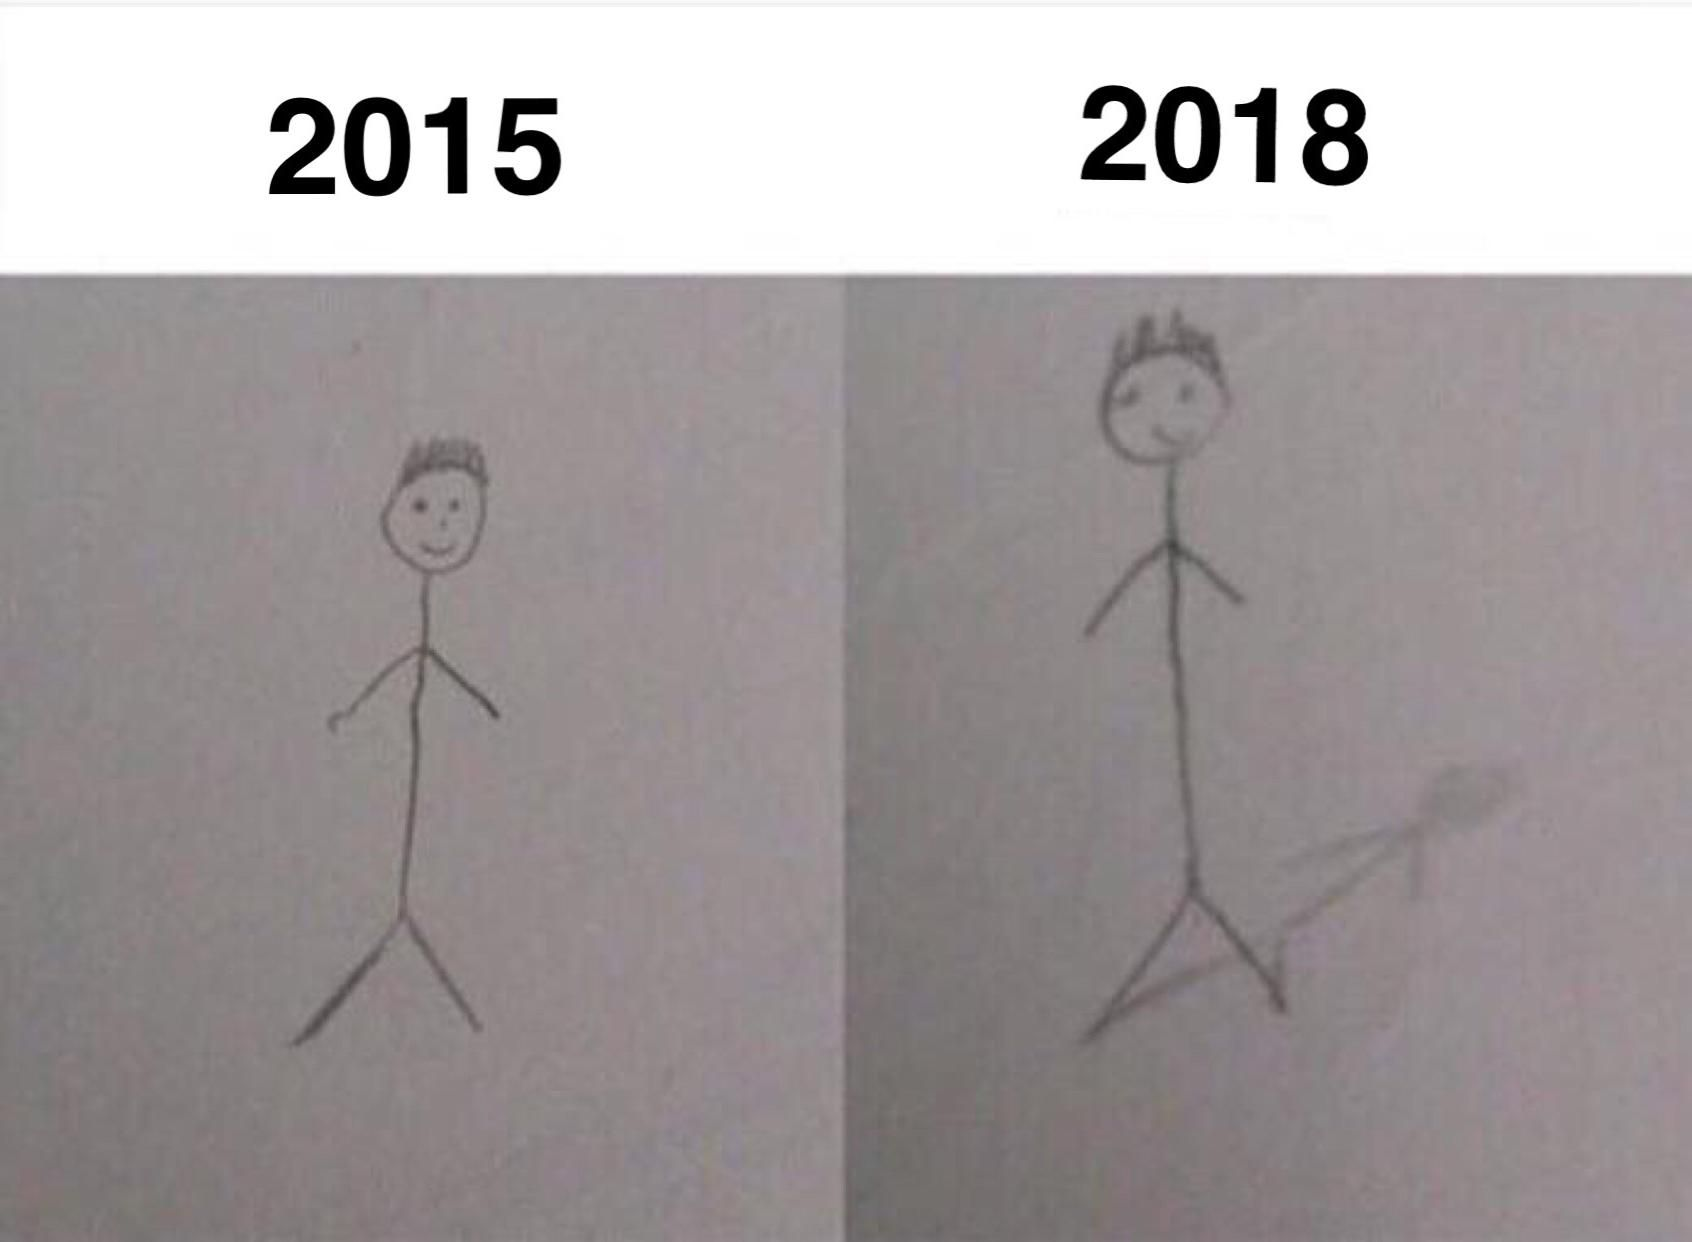 3 years at art school, perfection.